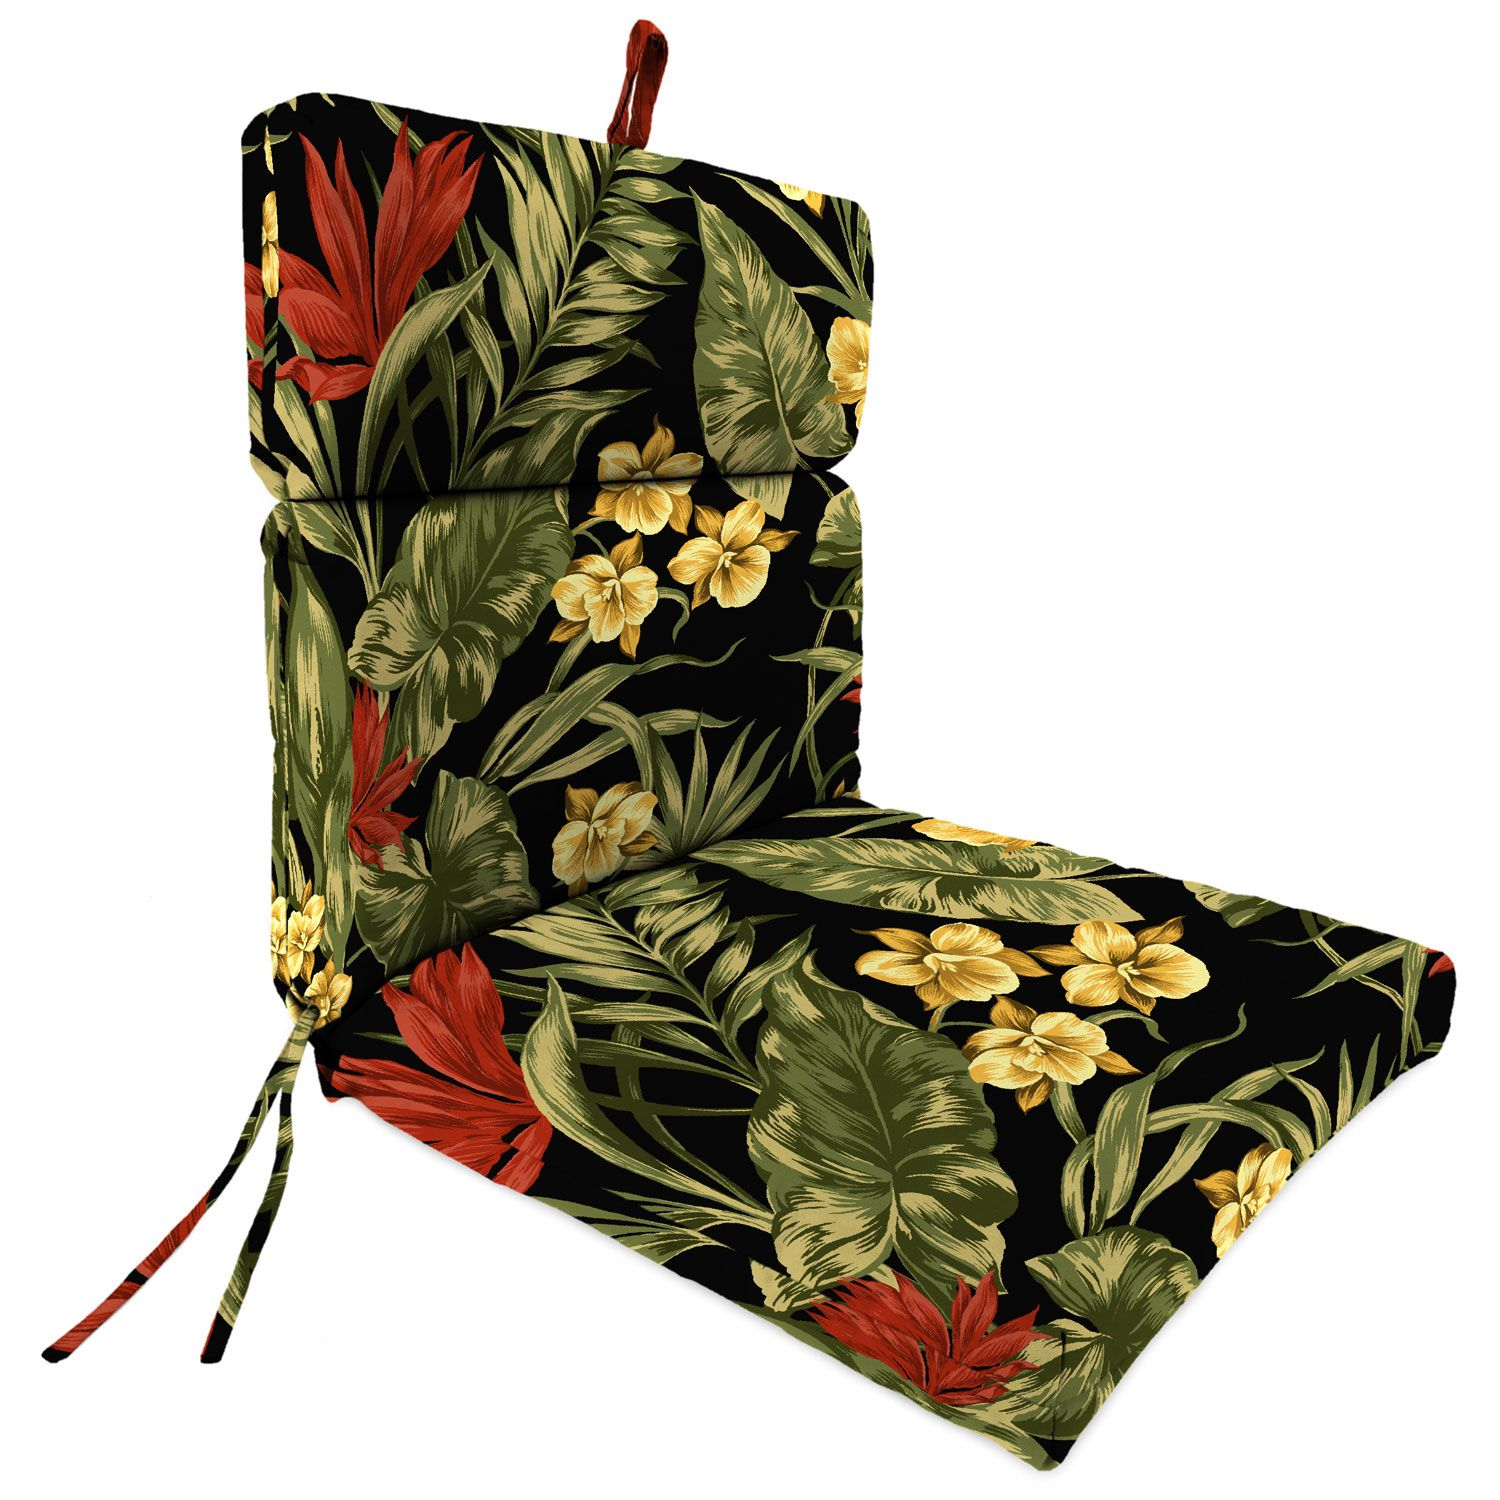 Sunset Ebony Universal Chair Cushion Jordan Manufacturing